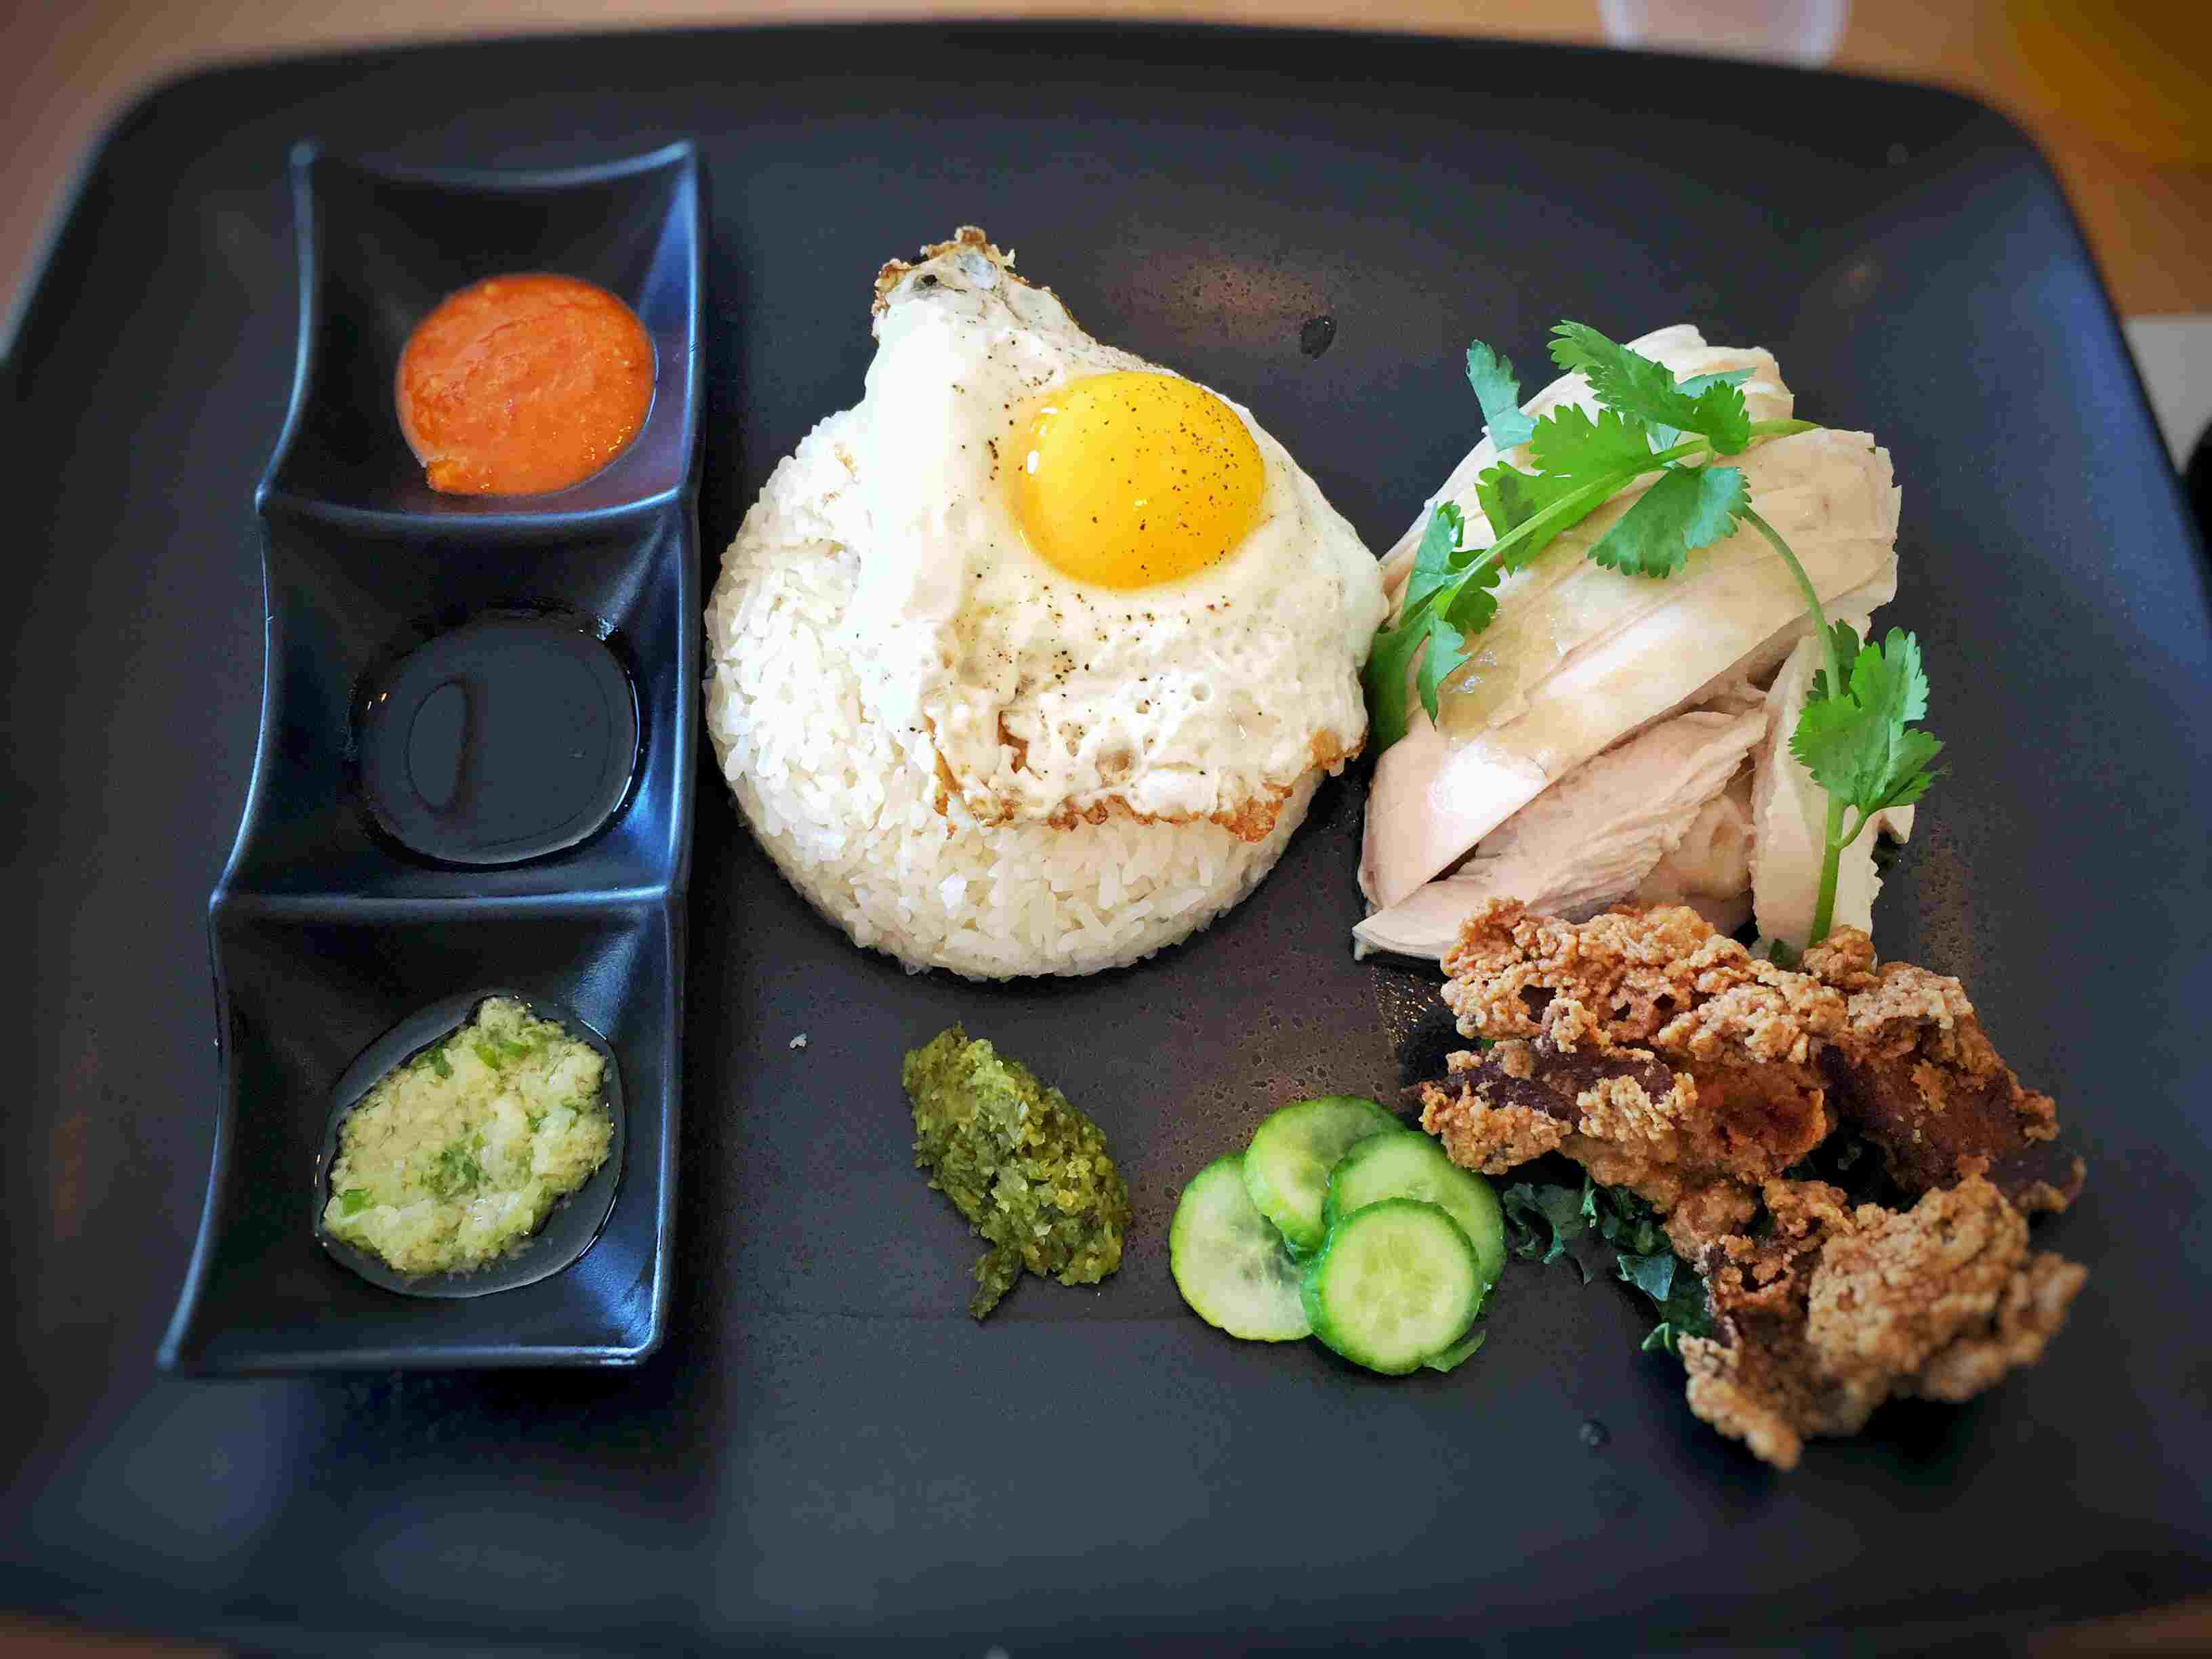 Hainanese chicken rice with fried egg and buttermilk fried chicken skin at Flock and Fowl